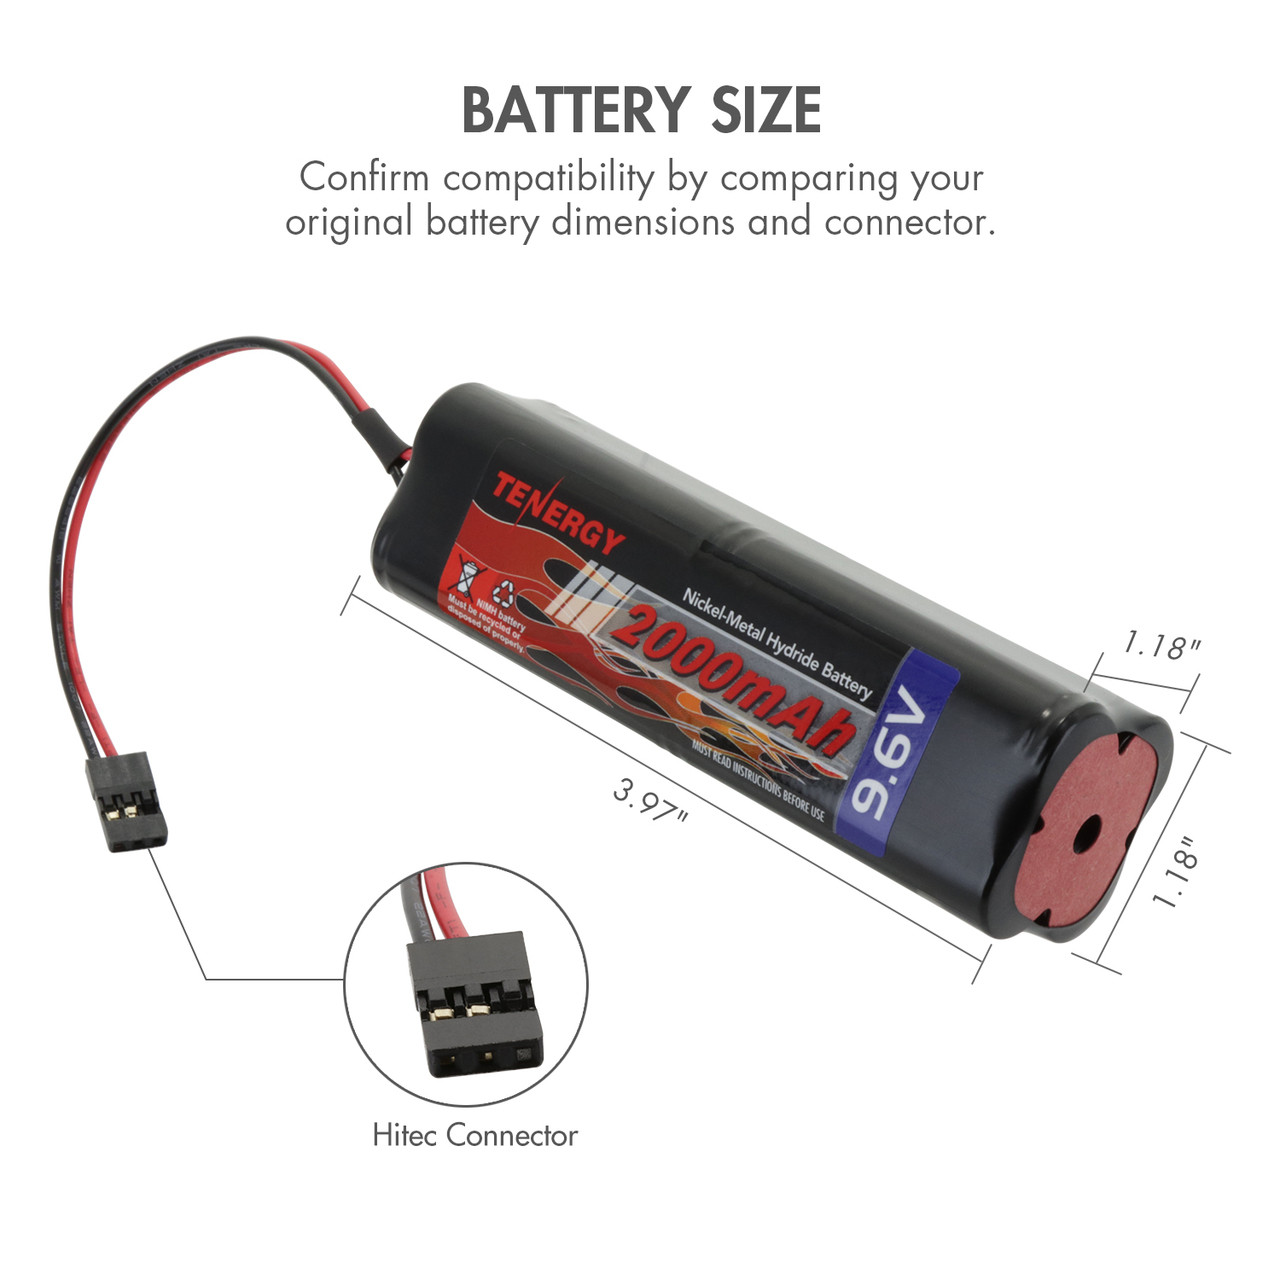 Tenergy NiMH 9.6V 2000mAh Square Rechargeable Transmitter Battery Pack, NT8S600B, for RC Airplanes and Cars